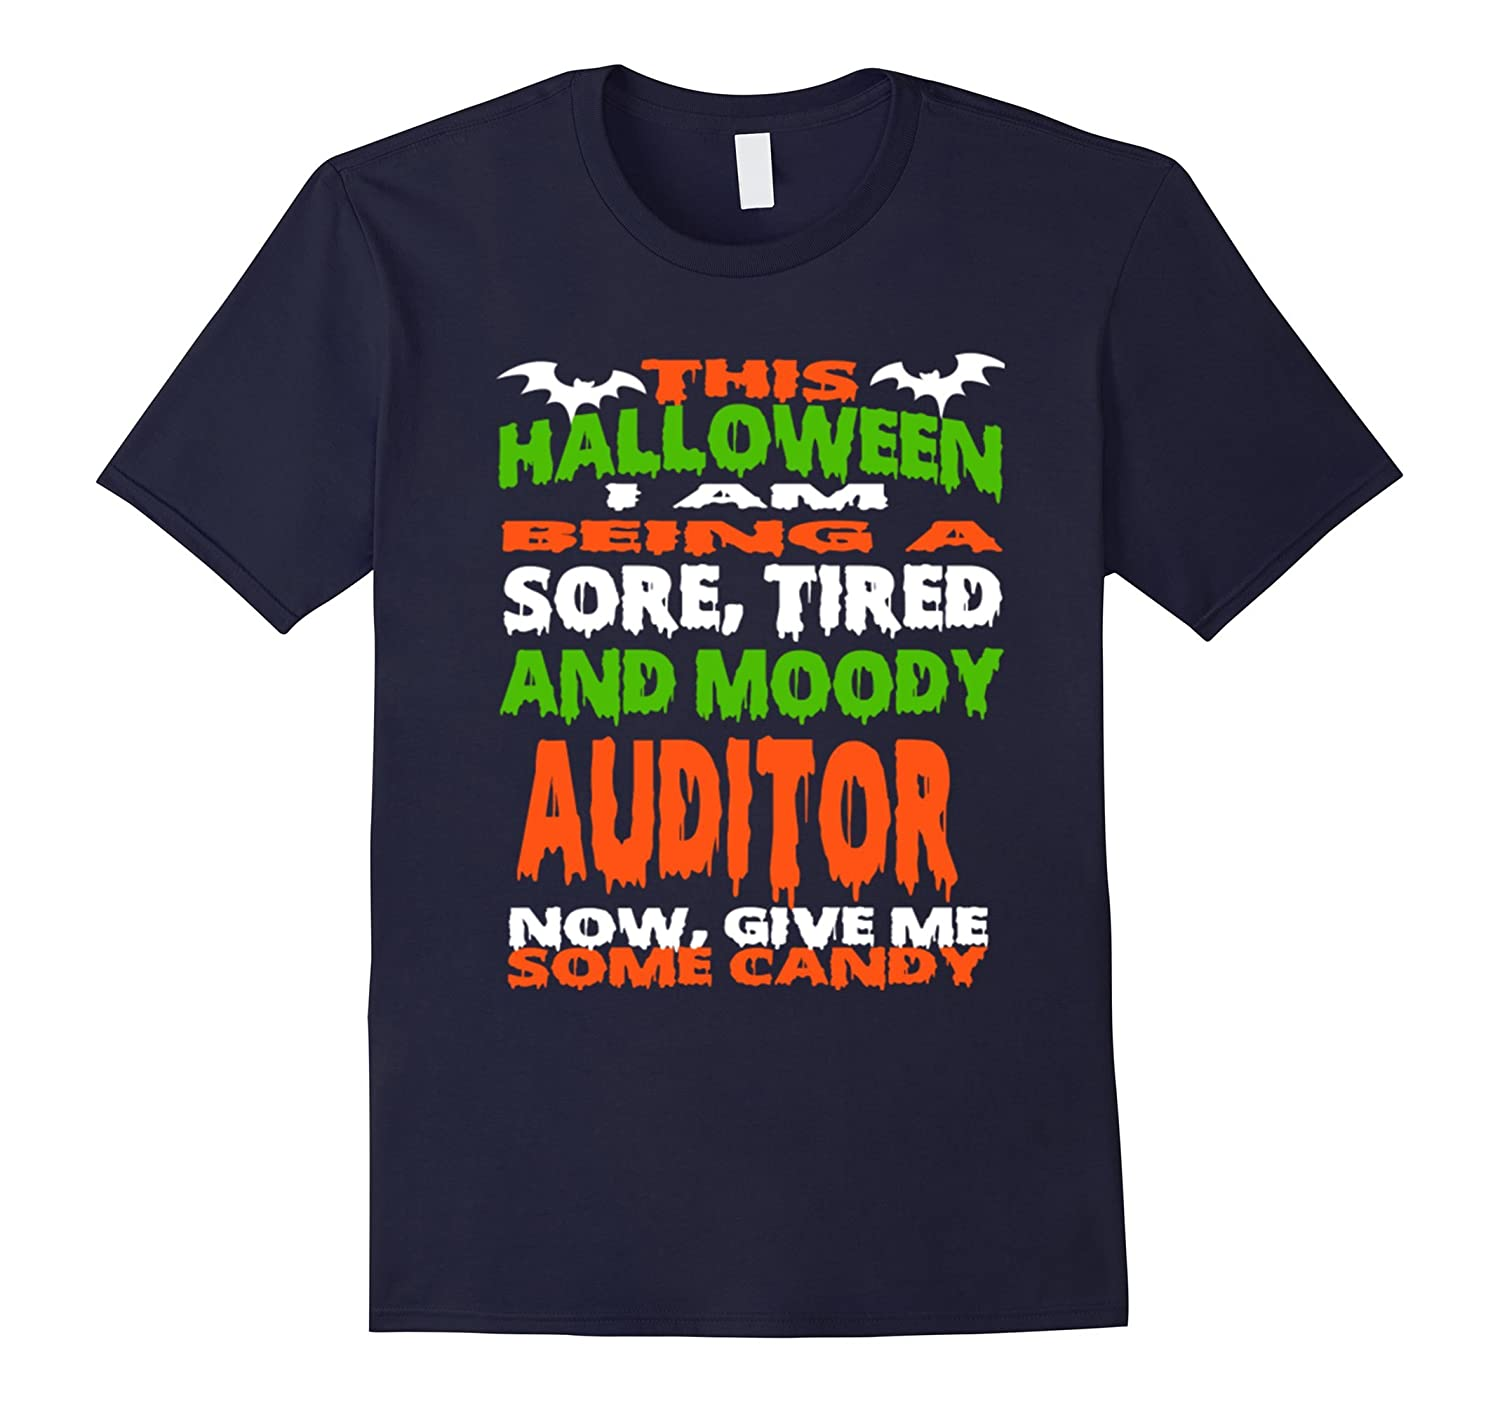 AUDITOR - HALLOWEEN SORE, TIRED - MOODY FUNNY SHIRT-FL